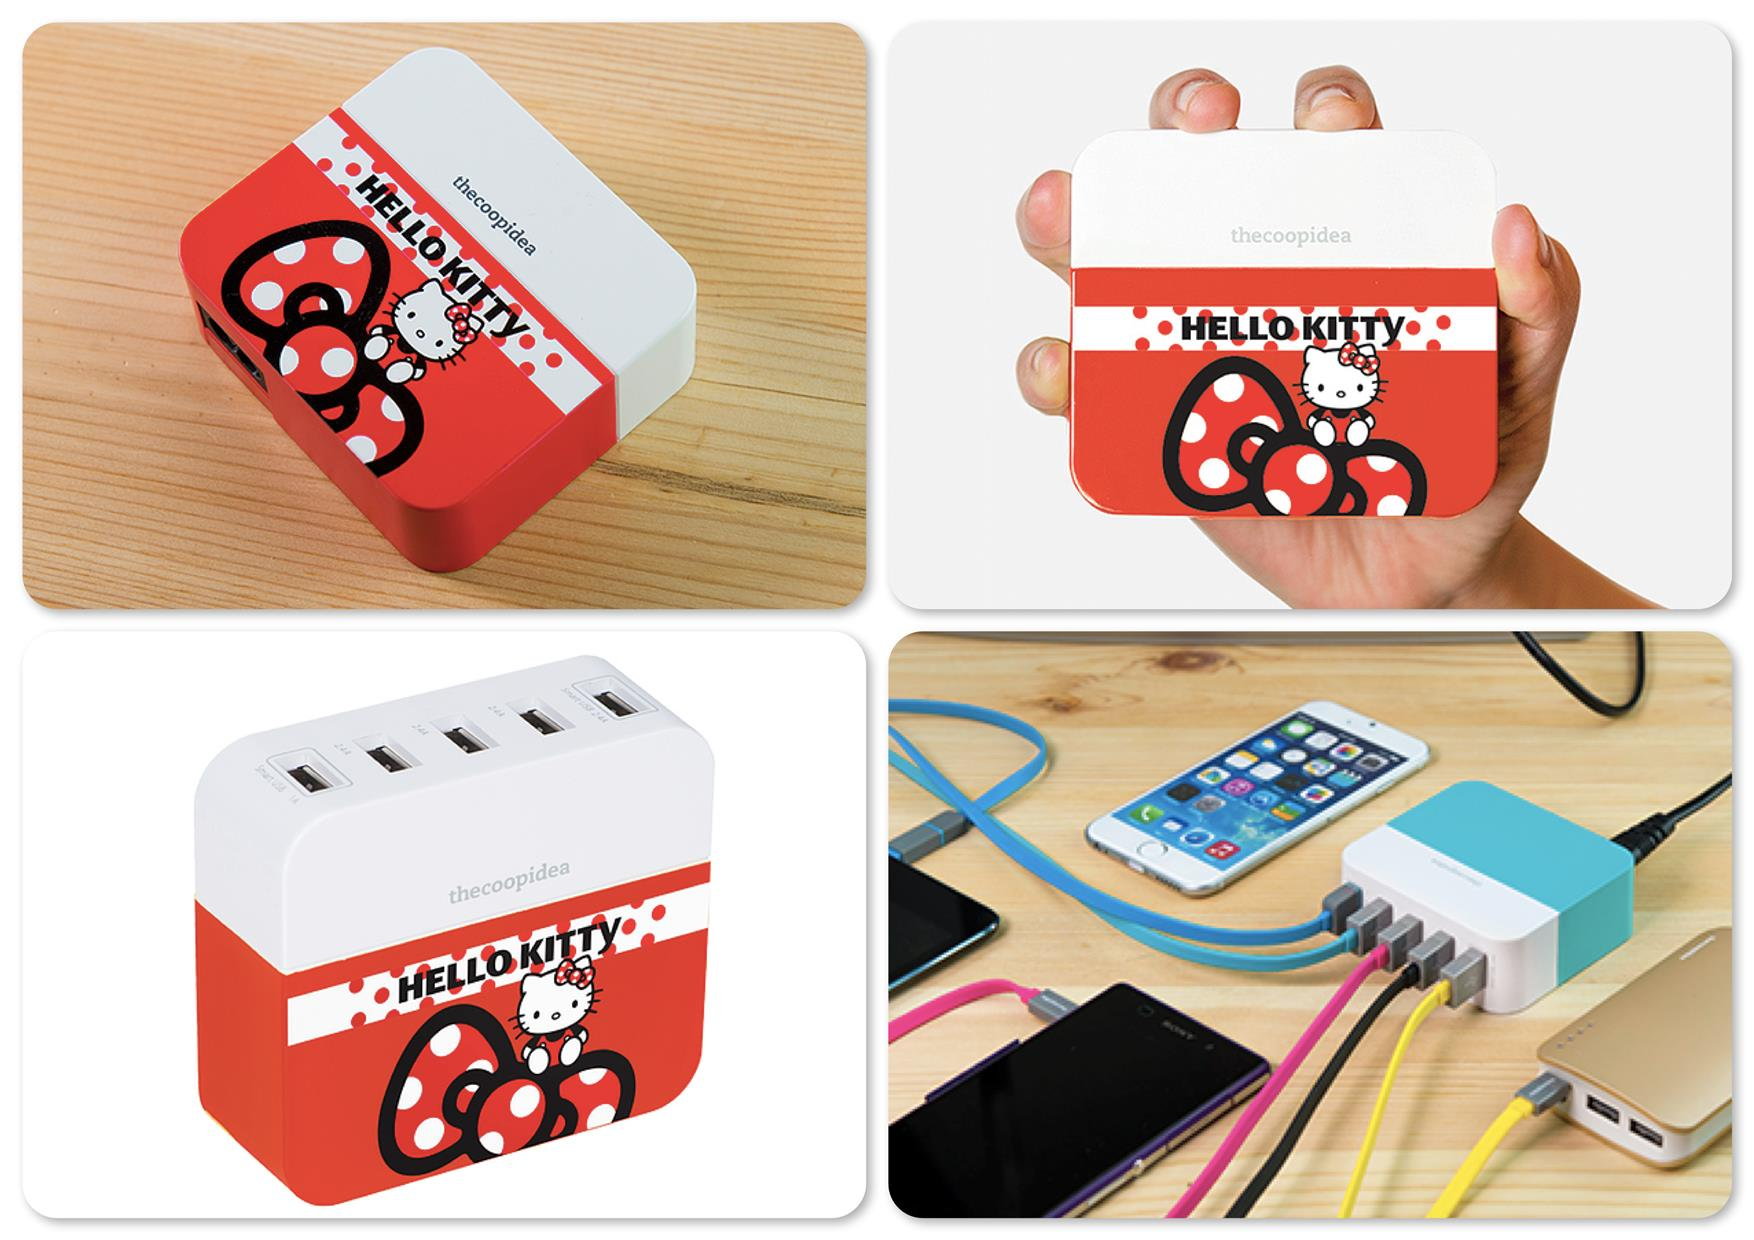 TheCoopIdea PowerBlock Hello Kitty Ribbon 10.6A 5 USB Travel Charger